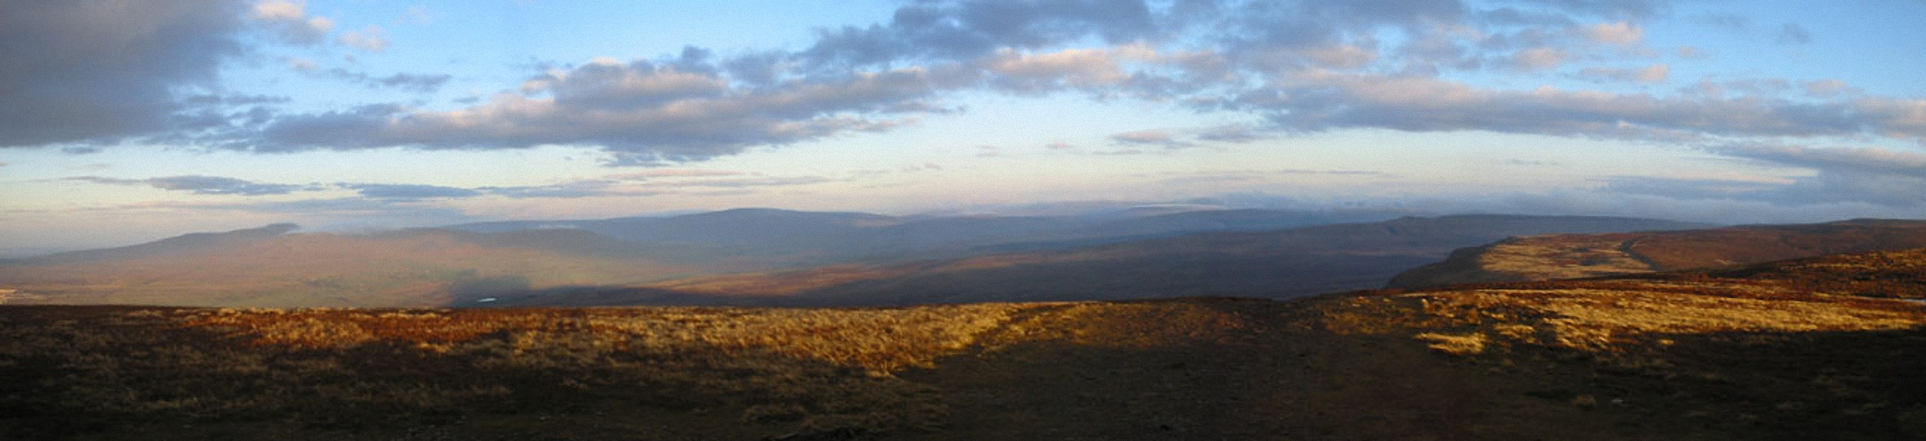 *Ingleborough and Whernside from Pen-y-ghent in the early morning light